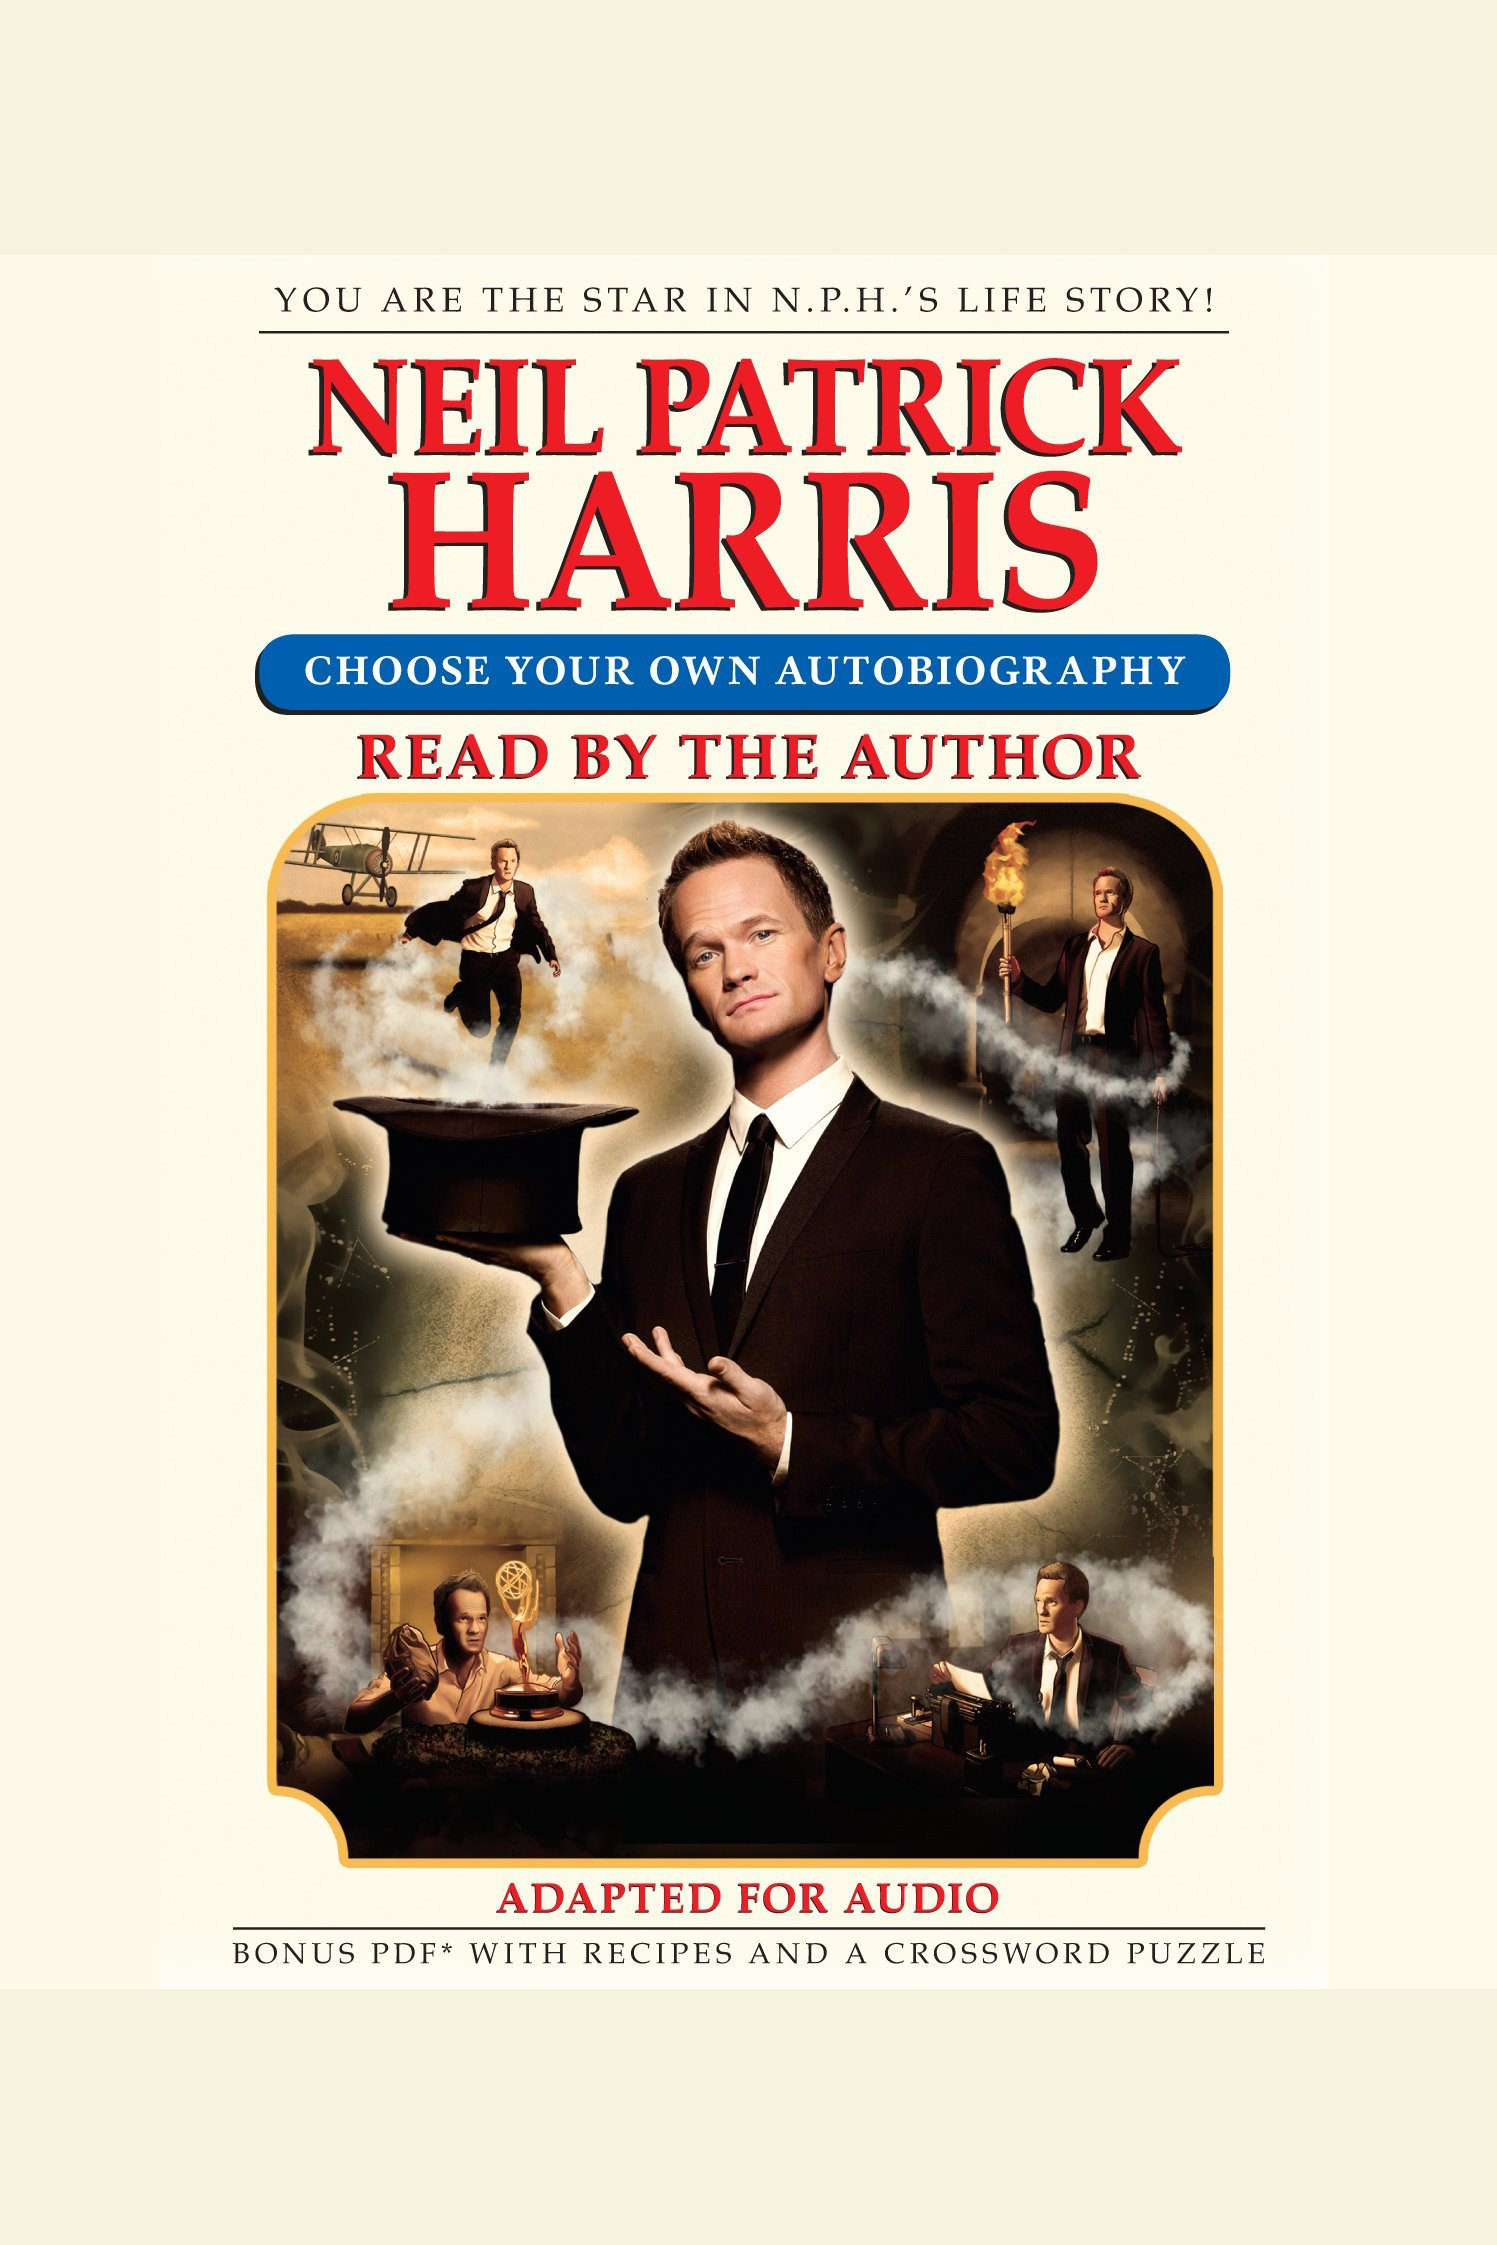 Neil Patrick Harris choose your own autobiography cover image